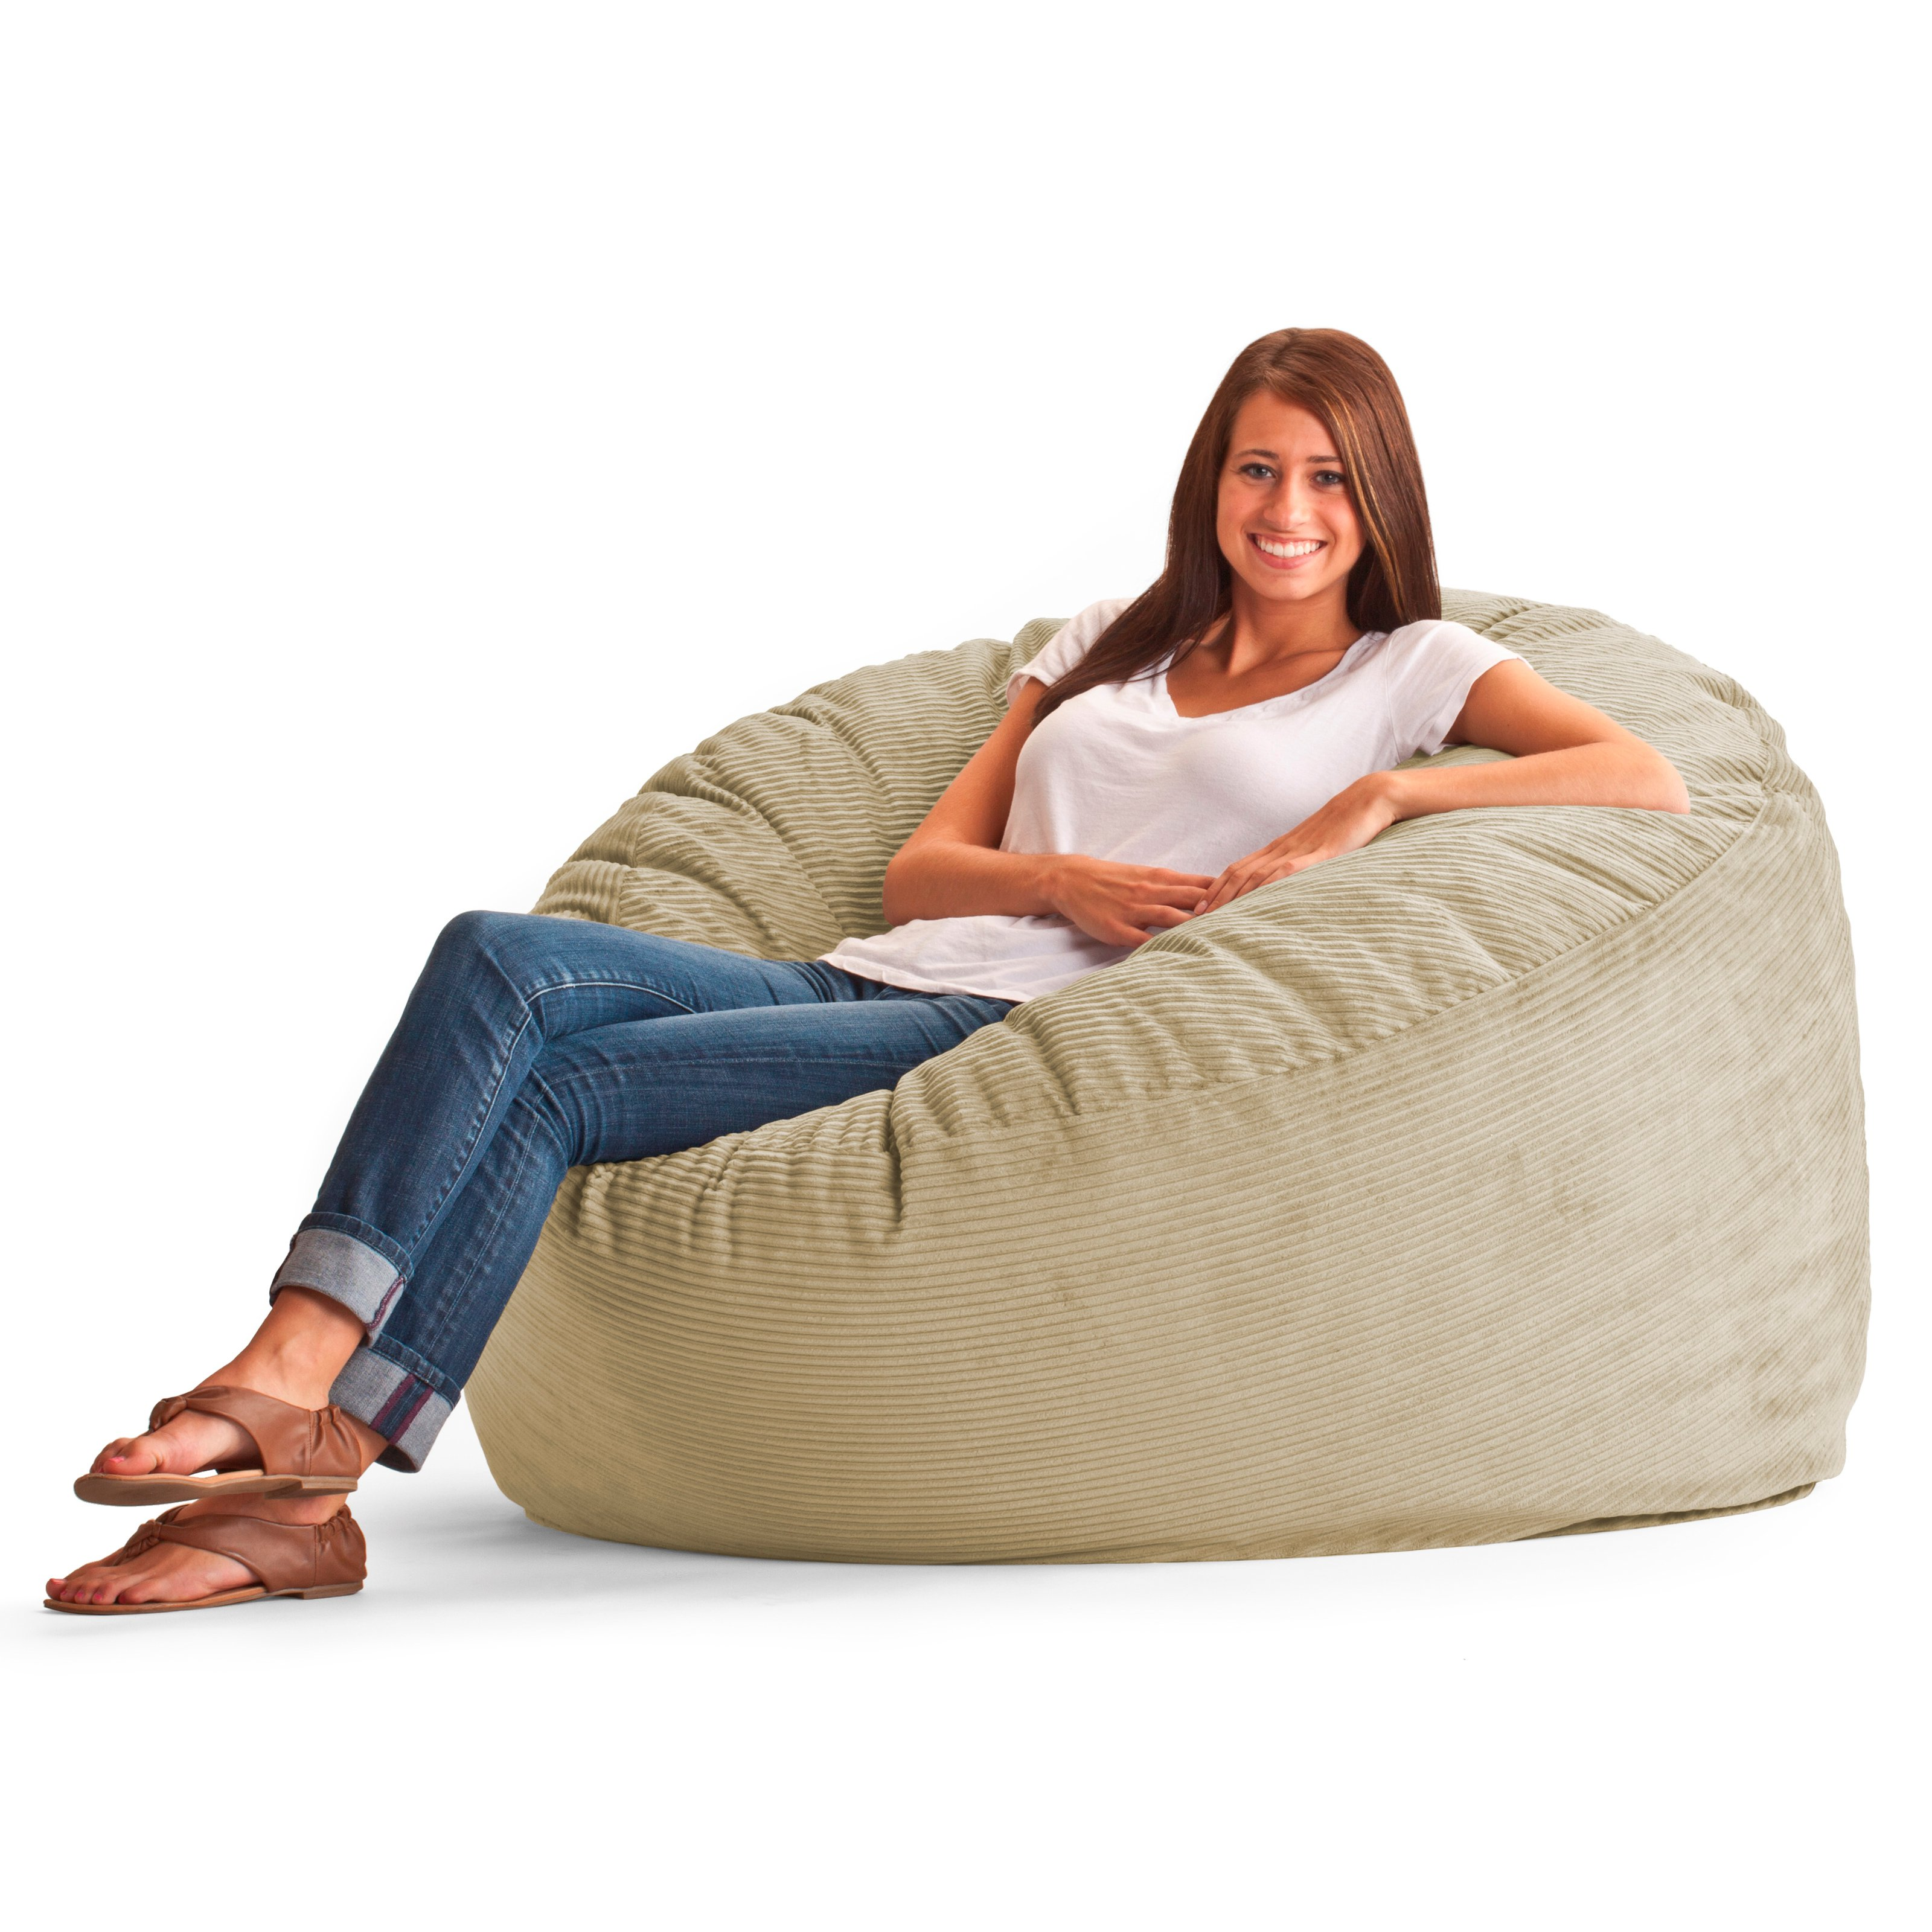 King Wide Wale Corduroy Bean Bag Sofa   Beach   Walmart.com